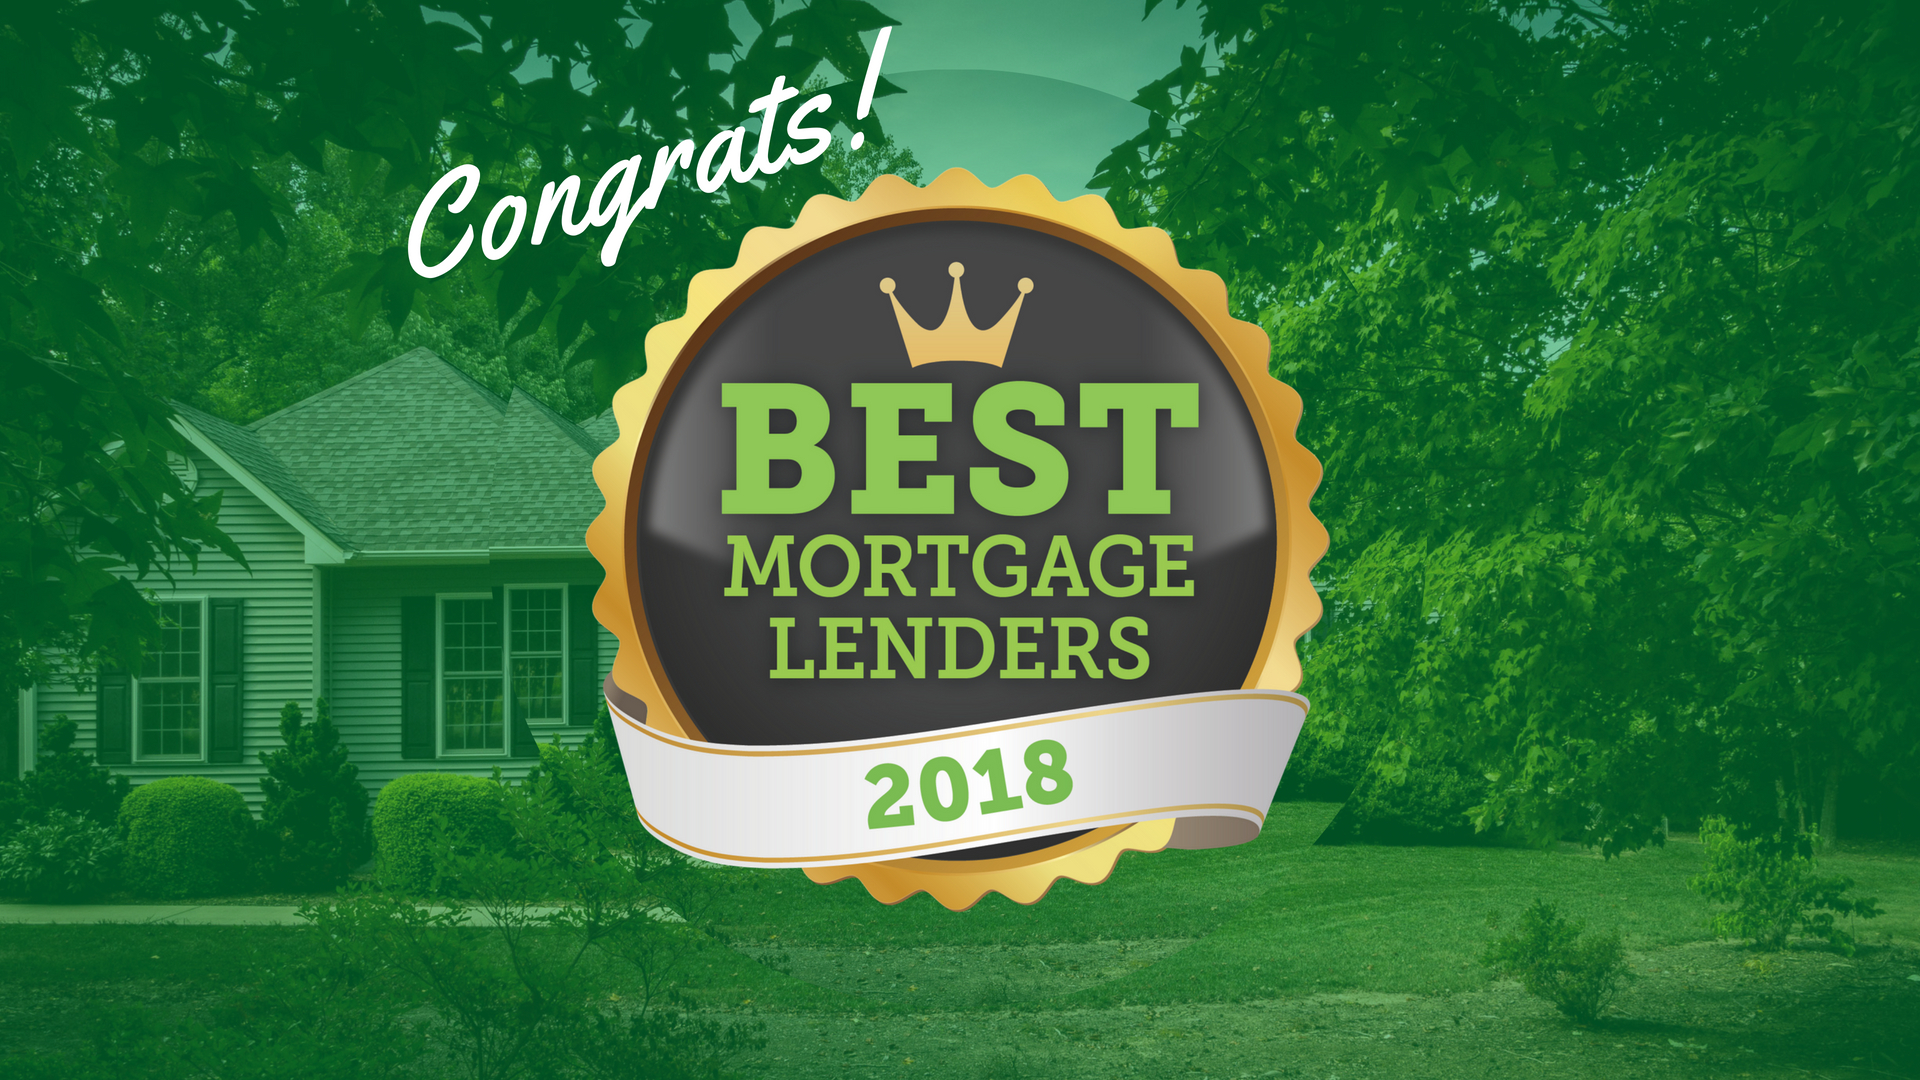 First Home Mortgage Recognized as the Best for 2018